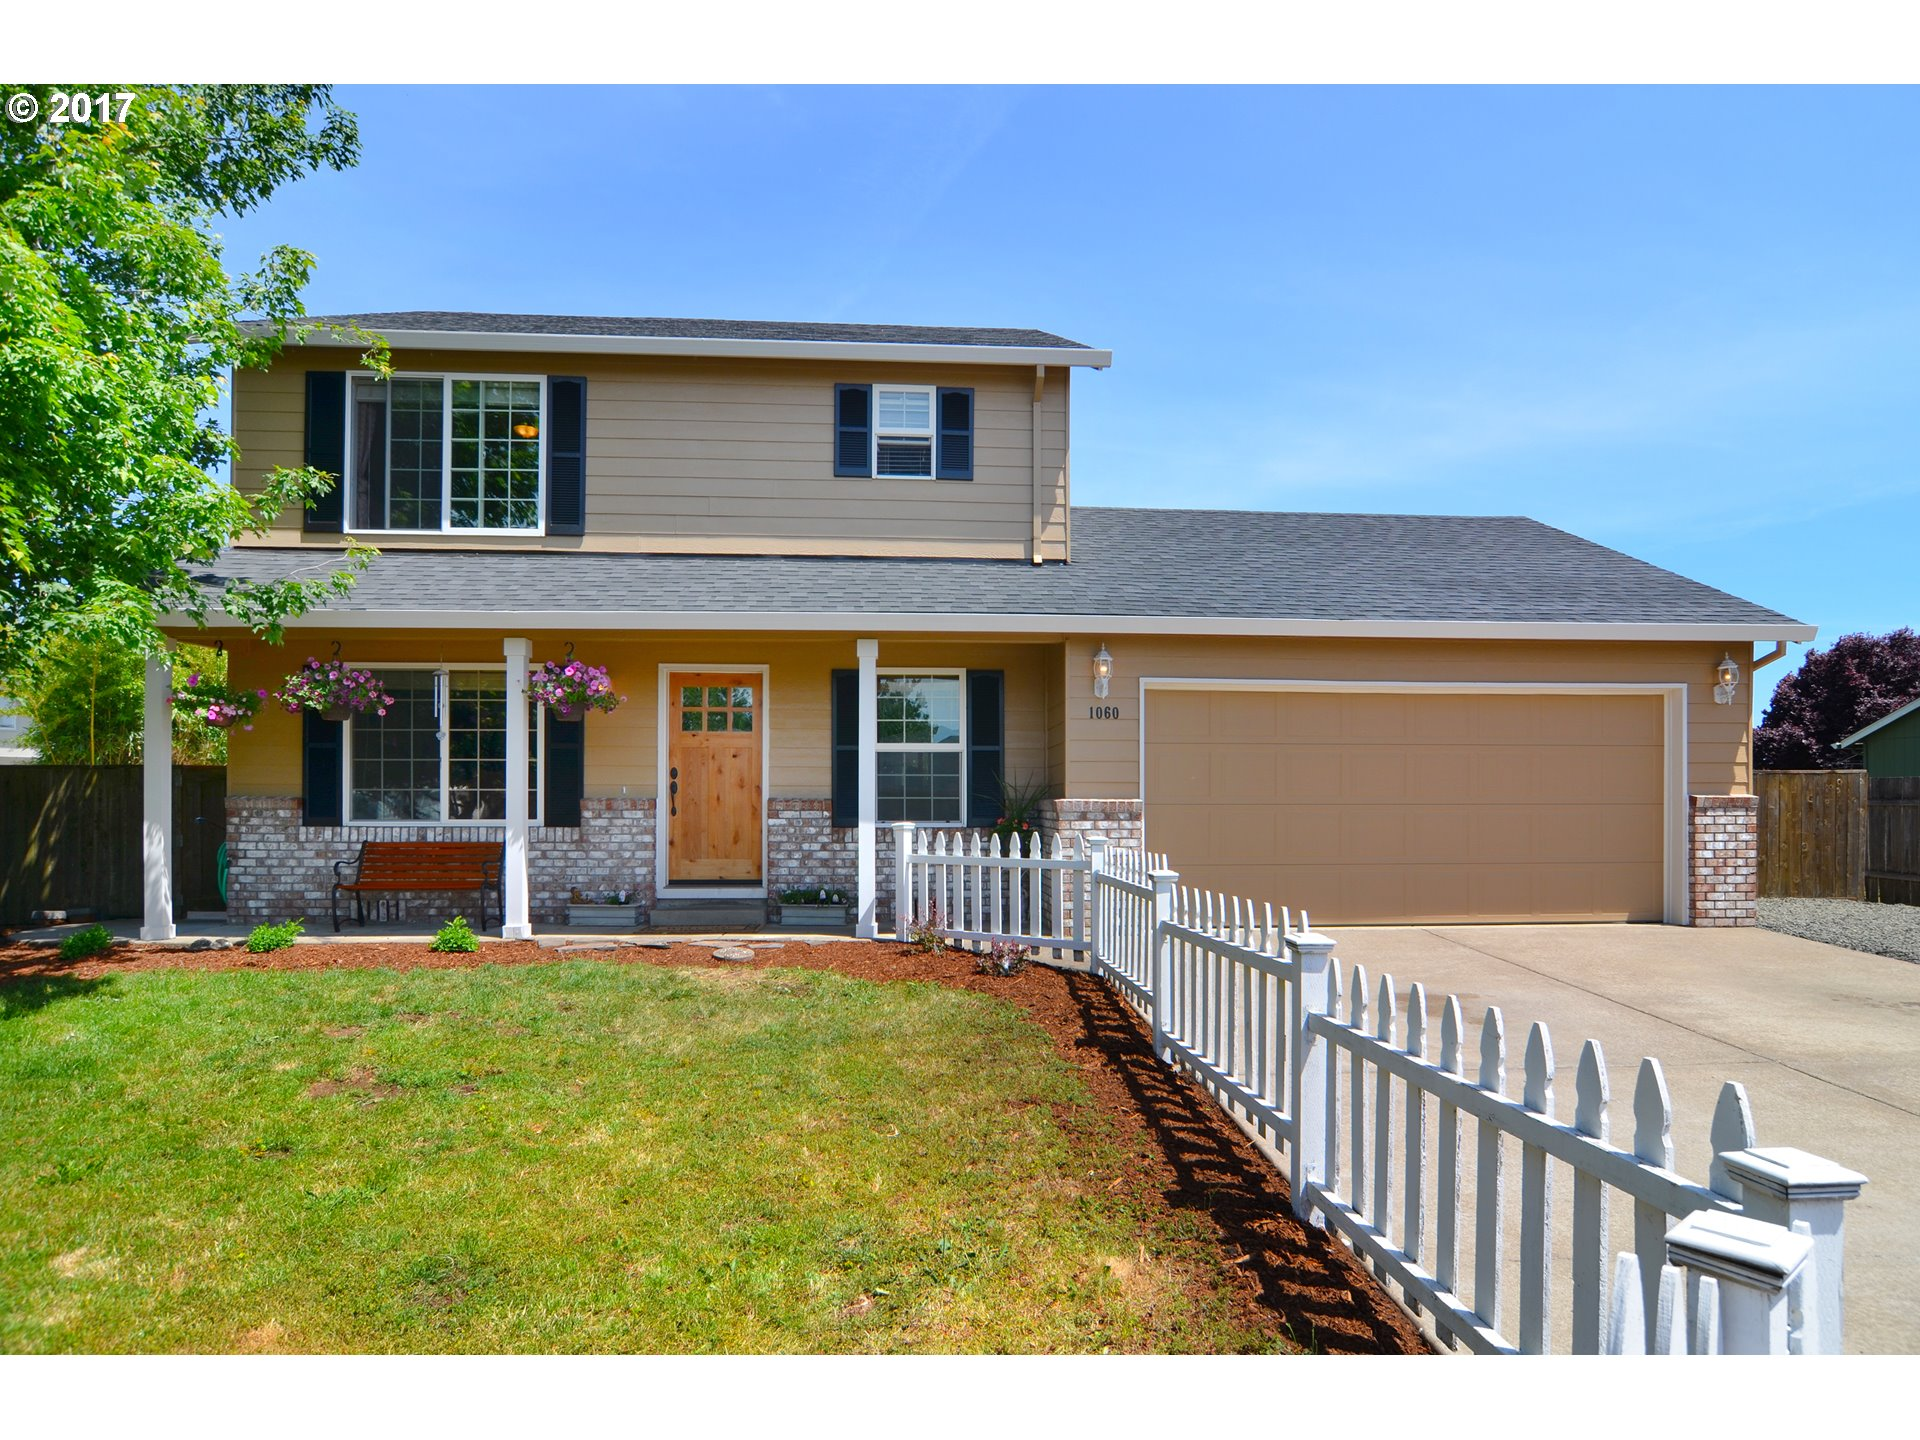 1060 W 17TH AVE, Junction City, OR 97448